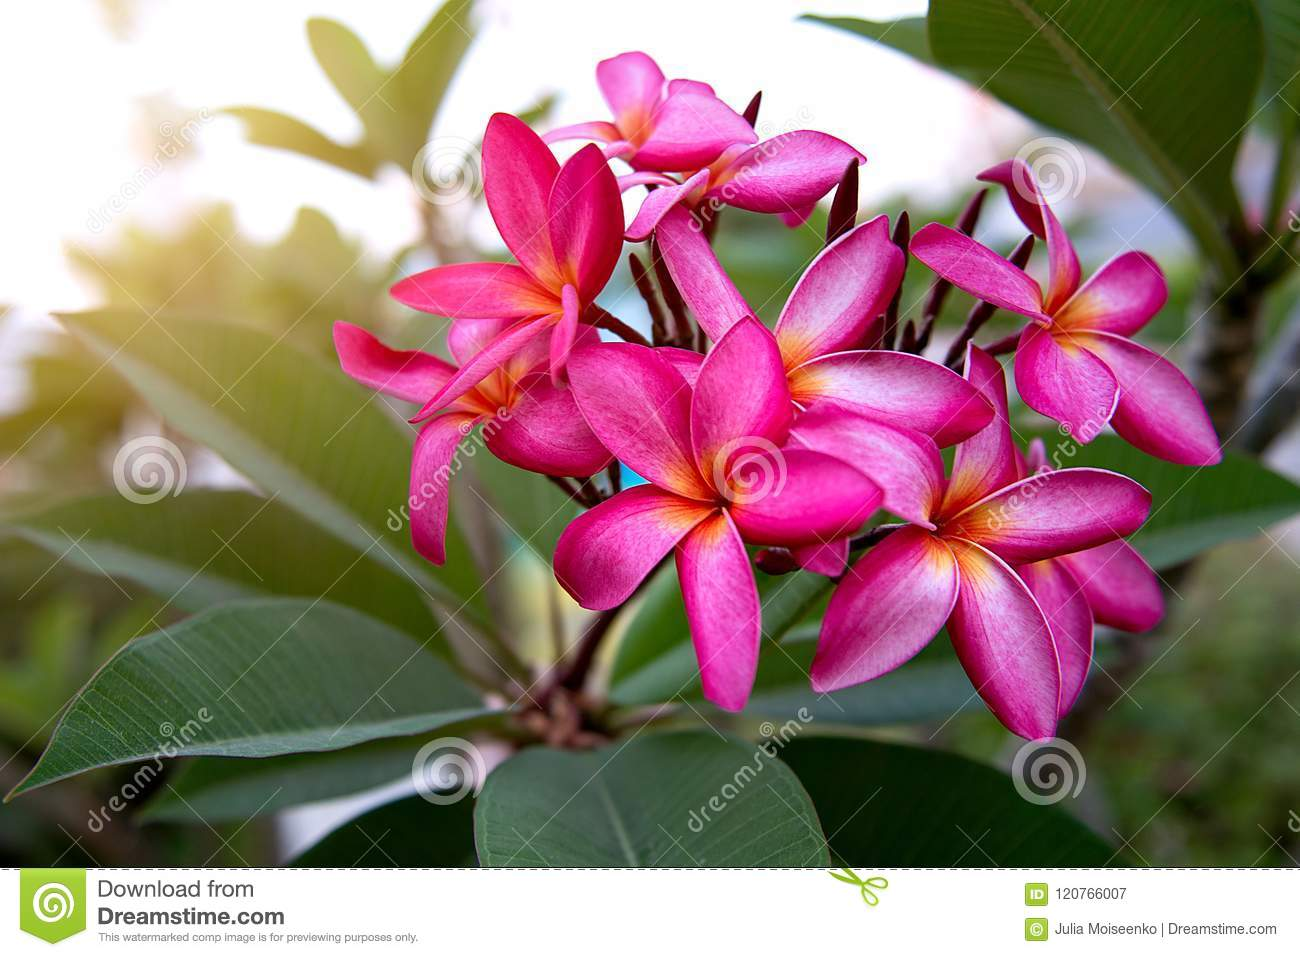 A lot of beautiful colourful flowers growing in the tropics exotic a lot of beautiful colourful flowers growing in the tropics exotic rare flowe izmirmasajfo